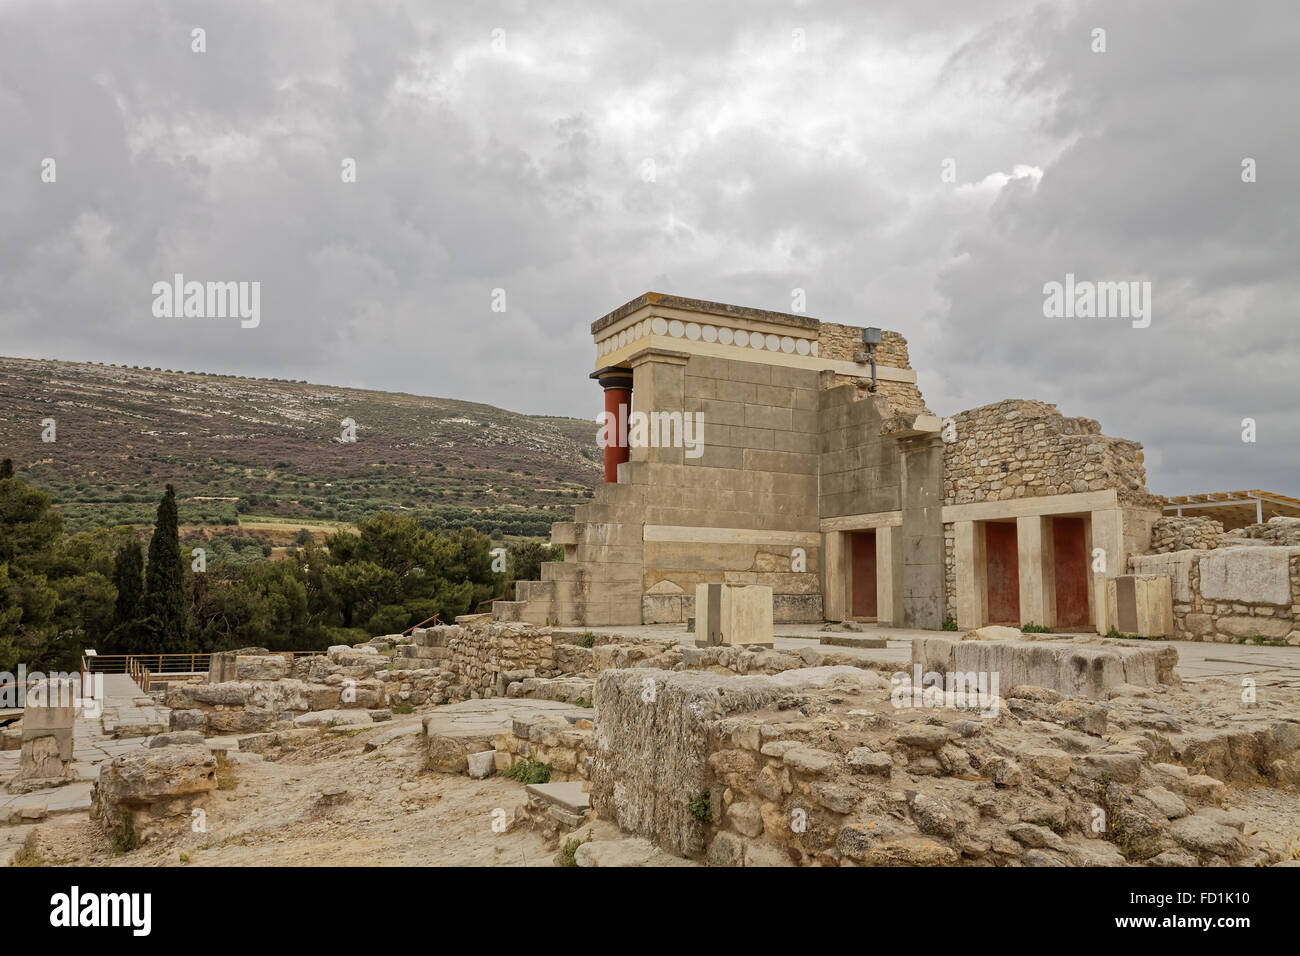 The palace of Knossos Minotaur or Labyrinth Restored North ...